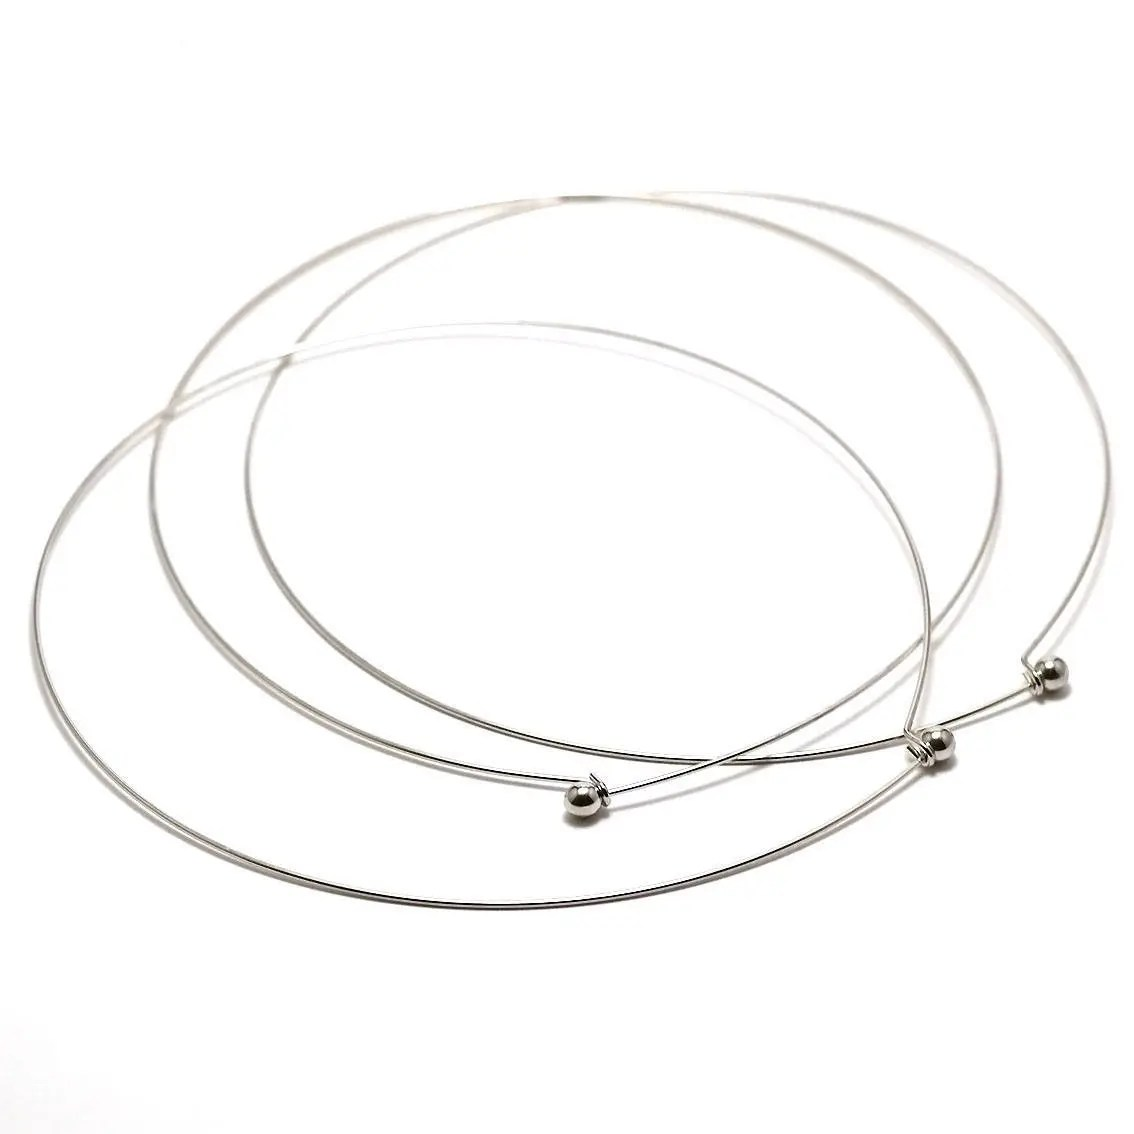 Silver color necklace, chaplet Wire circlet necklace, ball